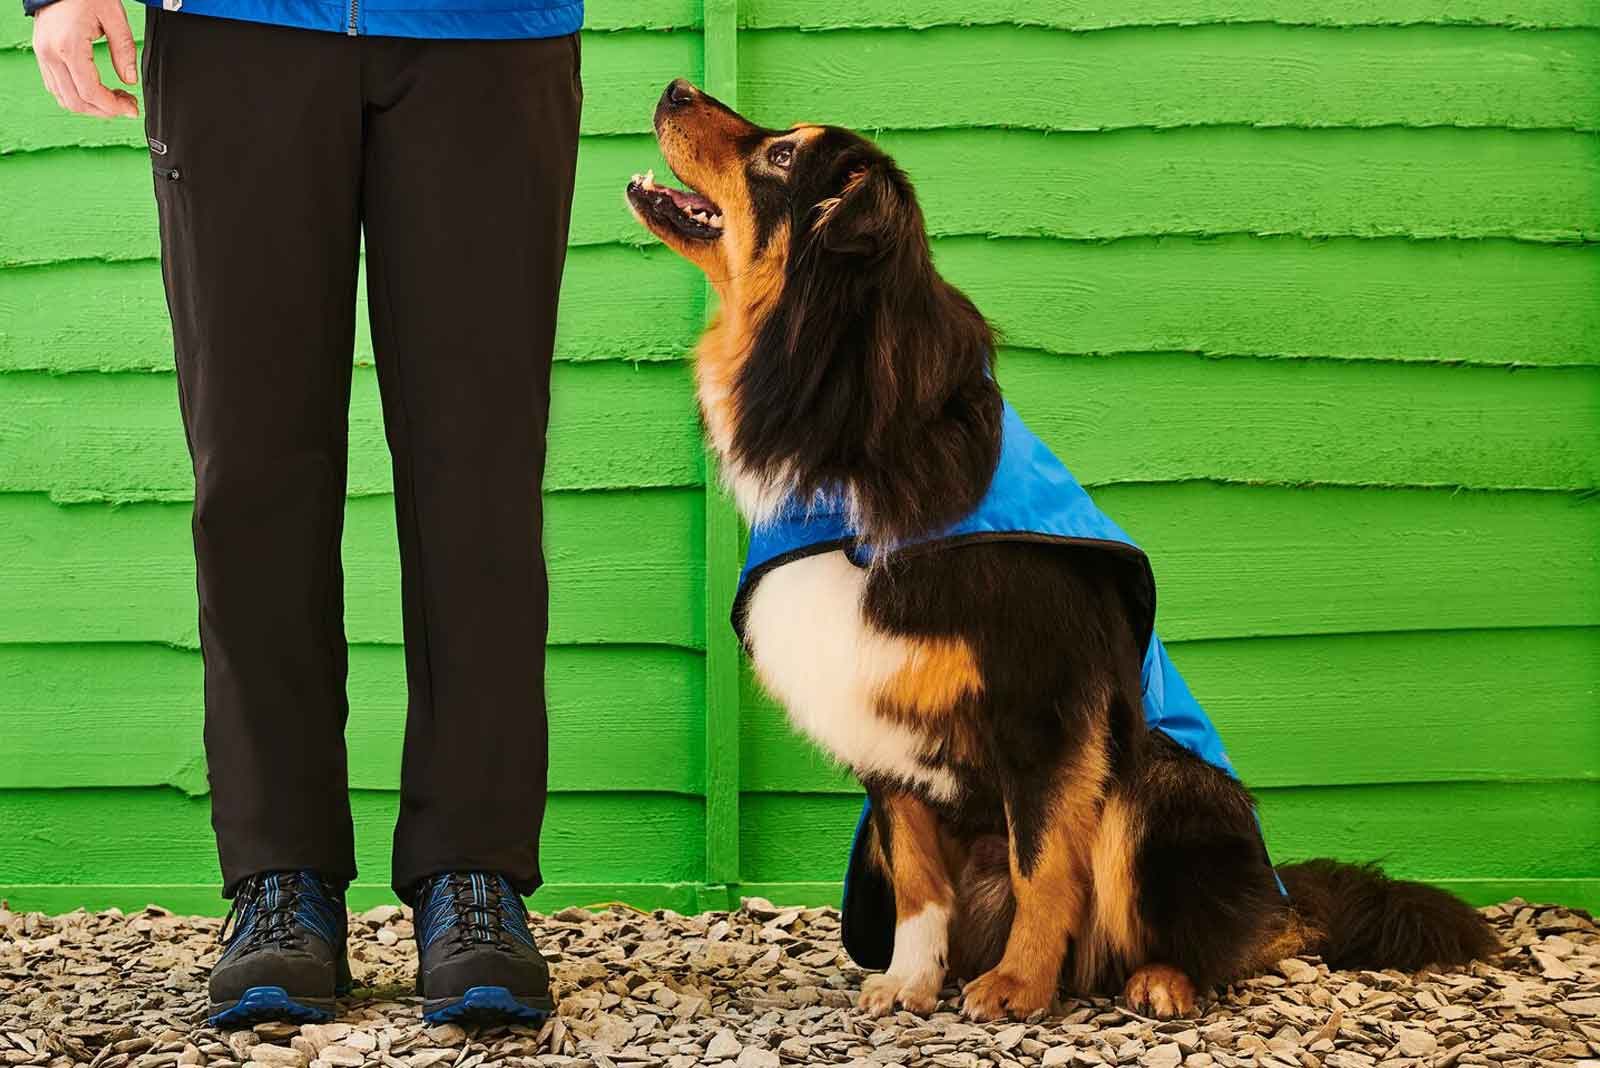 Dog looking up at owner who is wearing walking shoes.